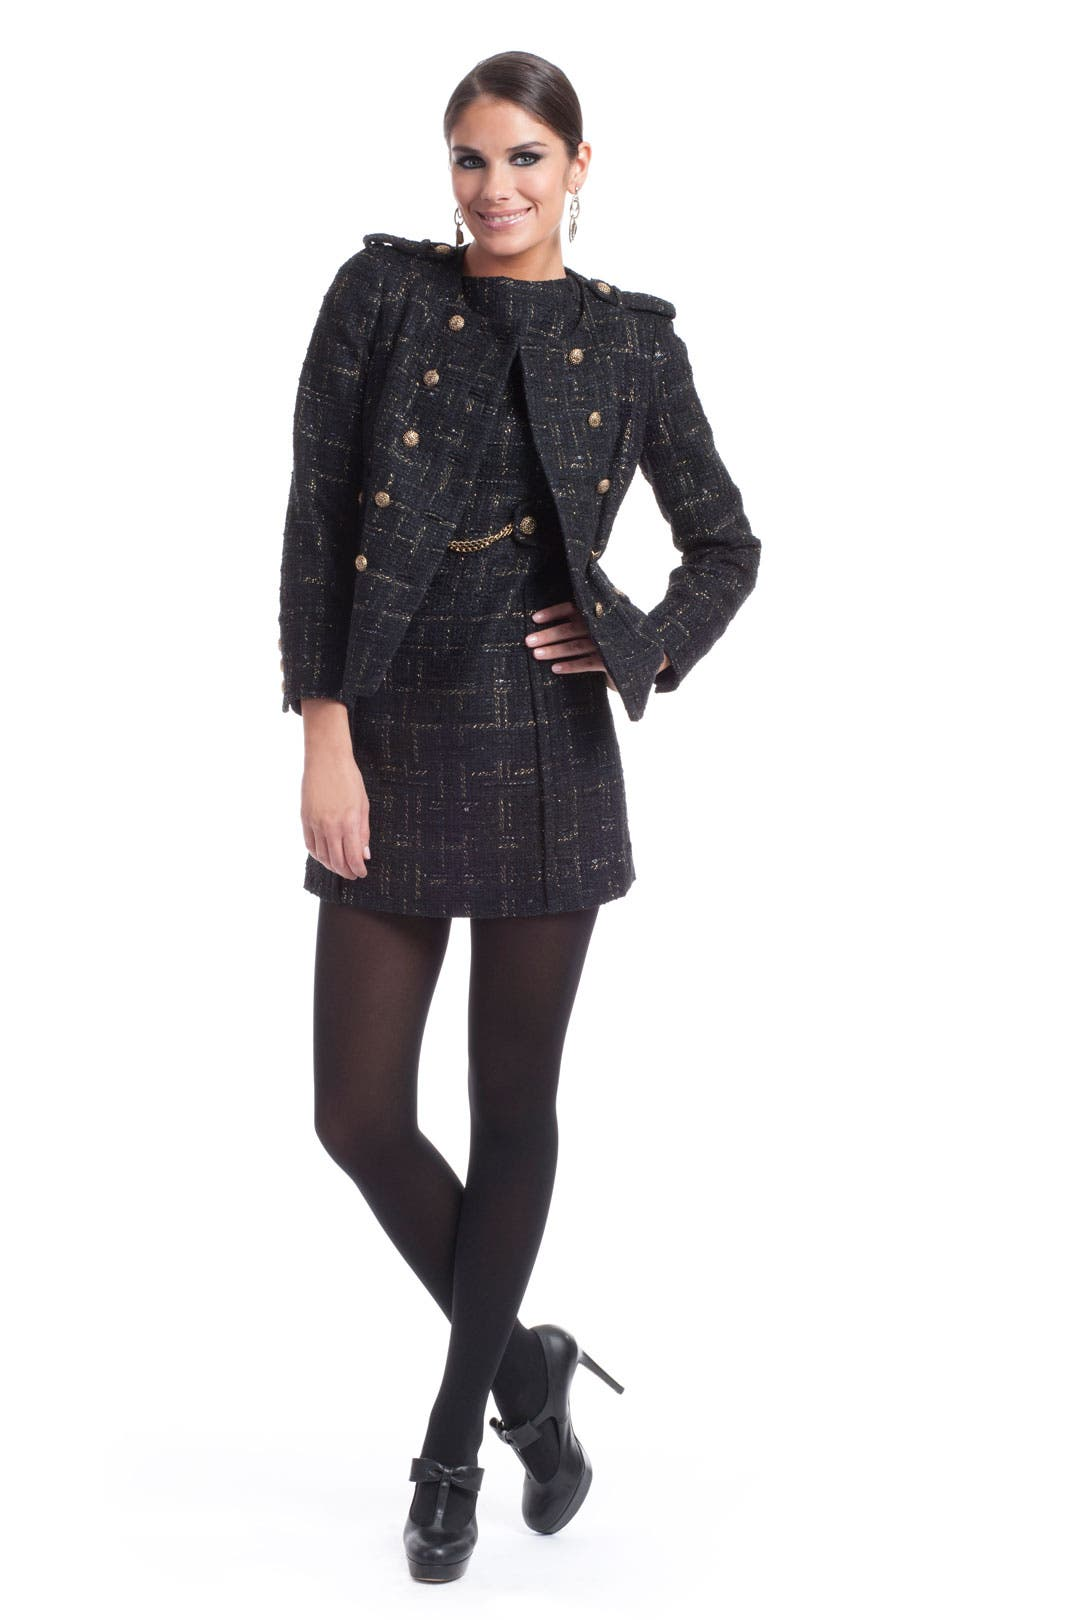 Queen of Scots Jacket by Milly